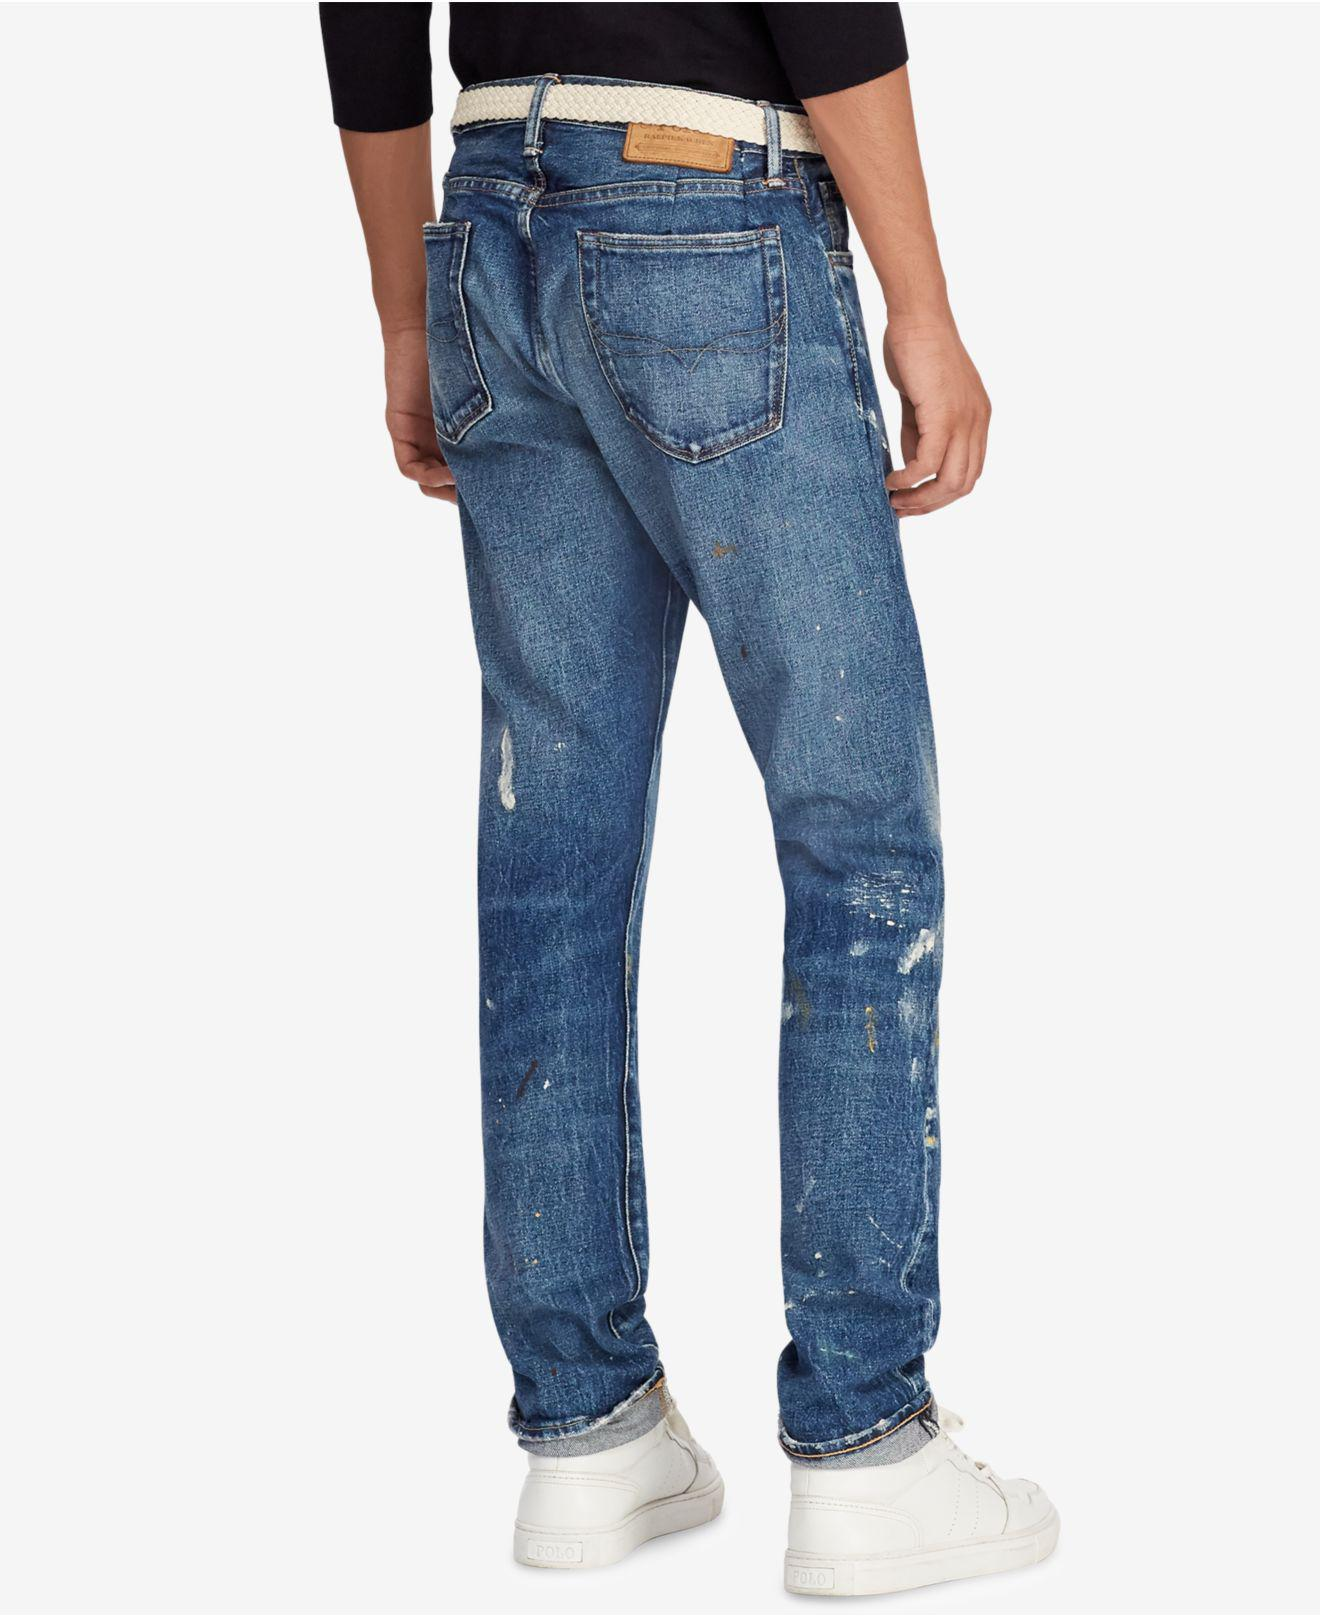 a1c592709 Lyst - Polo Ralph Lauren Great Outdoors Sullivan Slim Fit Stretch Jeans In  Blue in Blue for Men - Save 15%